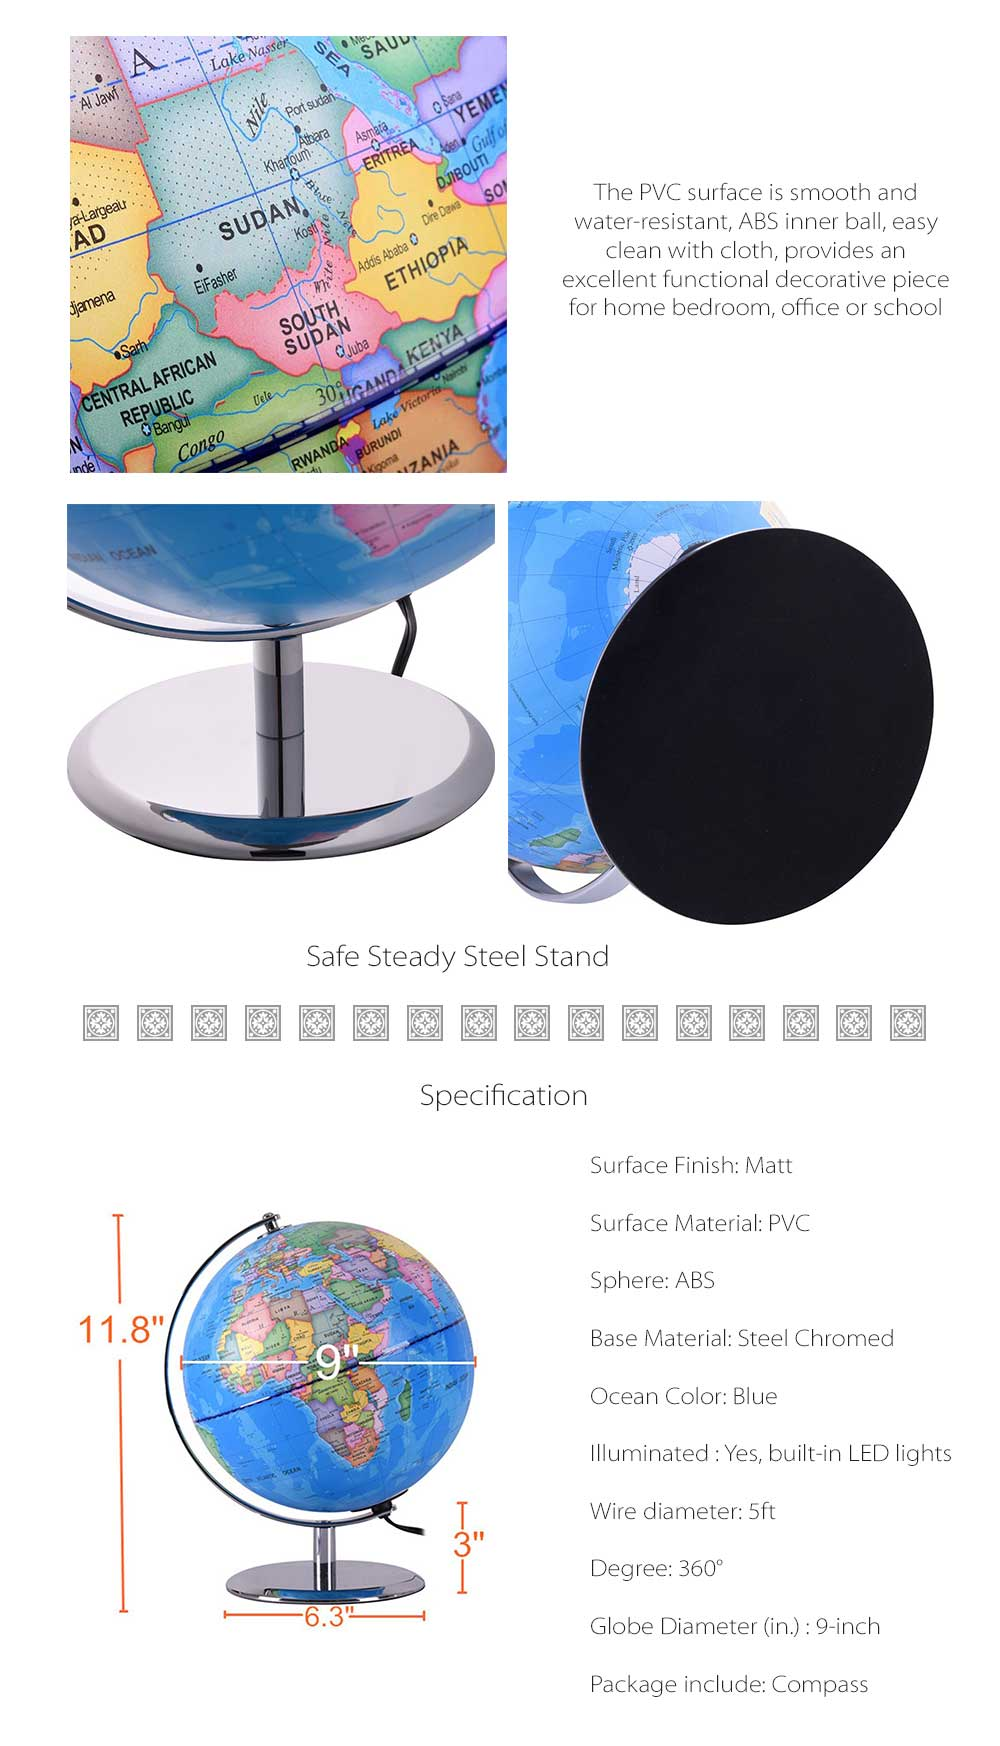 Qwork Illuminated Constellation World Globe 9-inch 3-in-1 Political Tabletop Lighted Earth Map